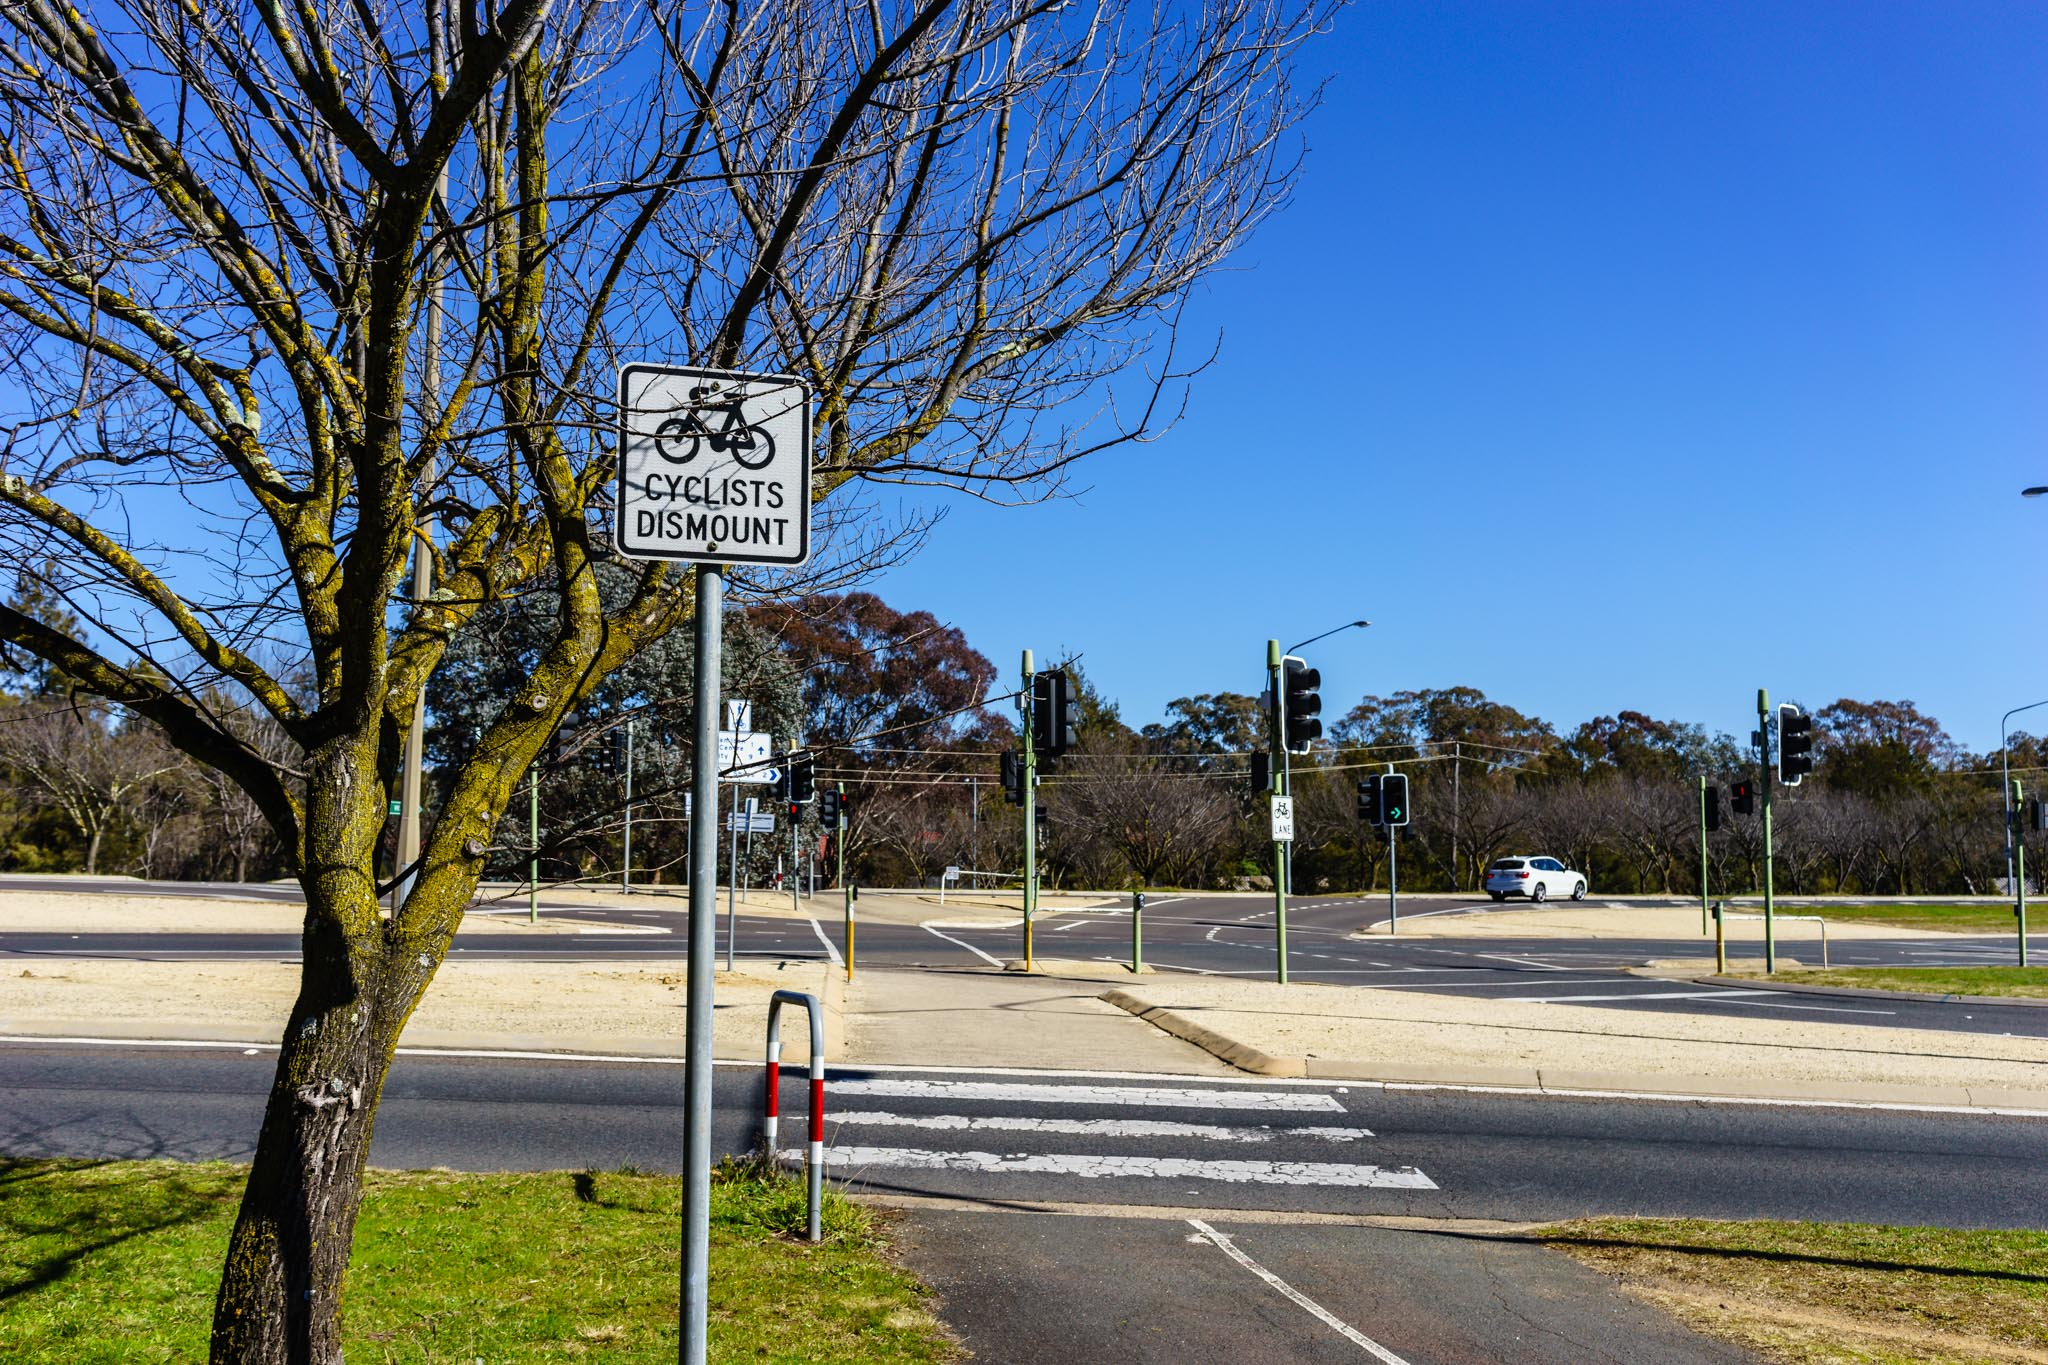 Cyclists dismount sign Benjamin Way. I've never seen a cyclist dismount in Canberra.